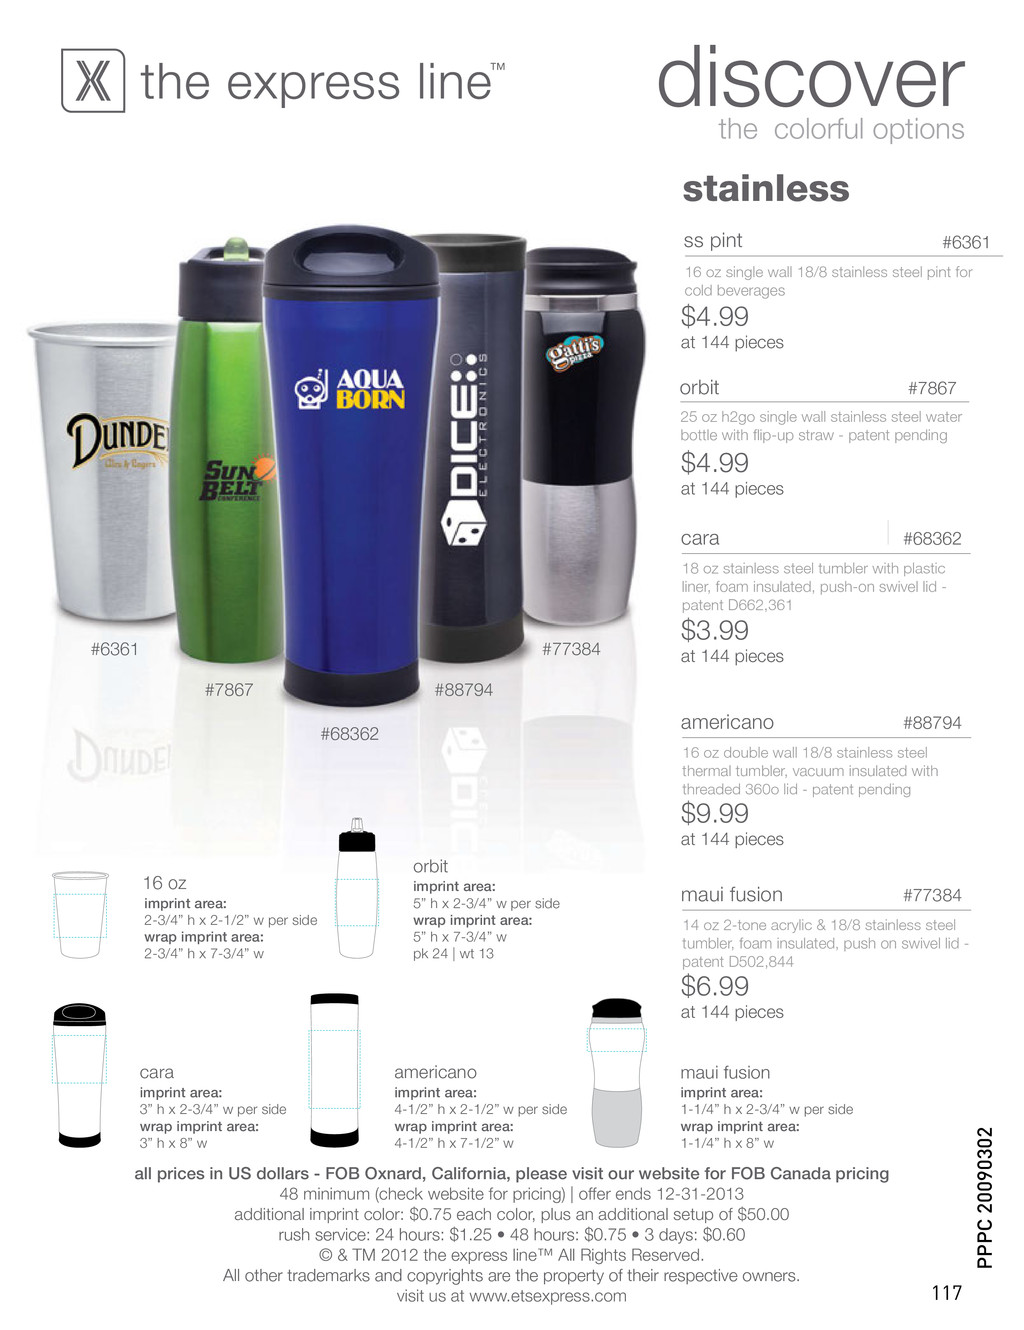 discover the colorful options stainless #7867 #...